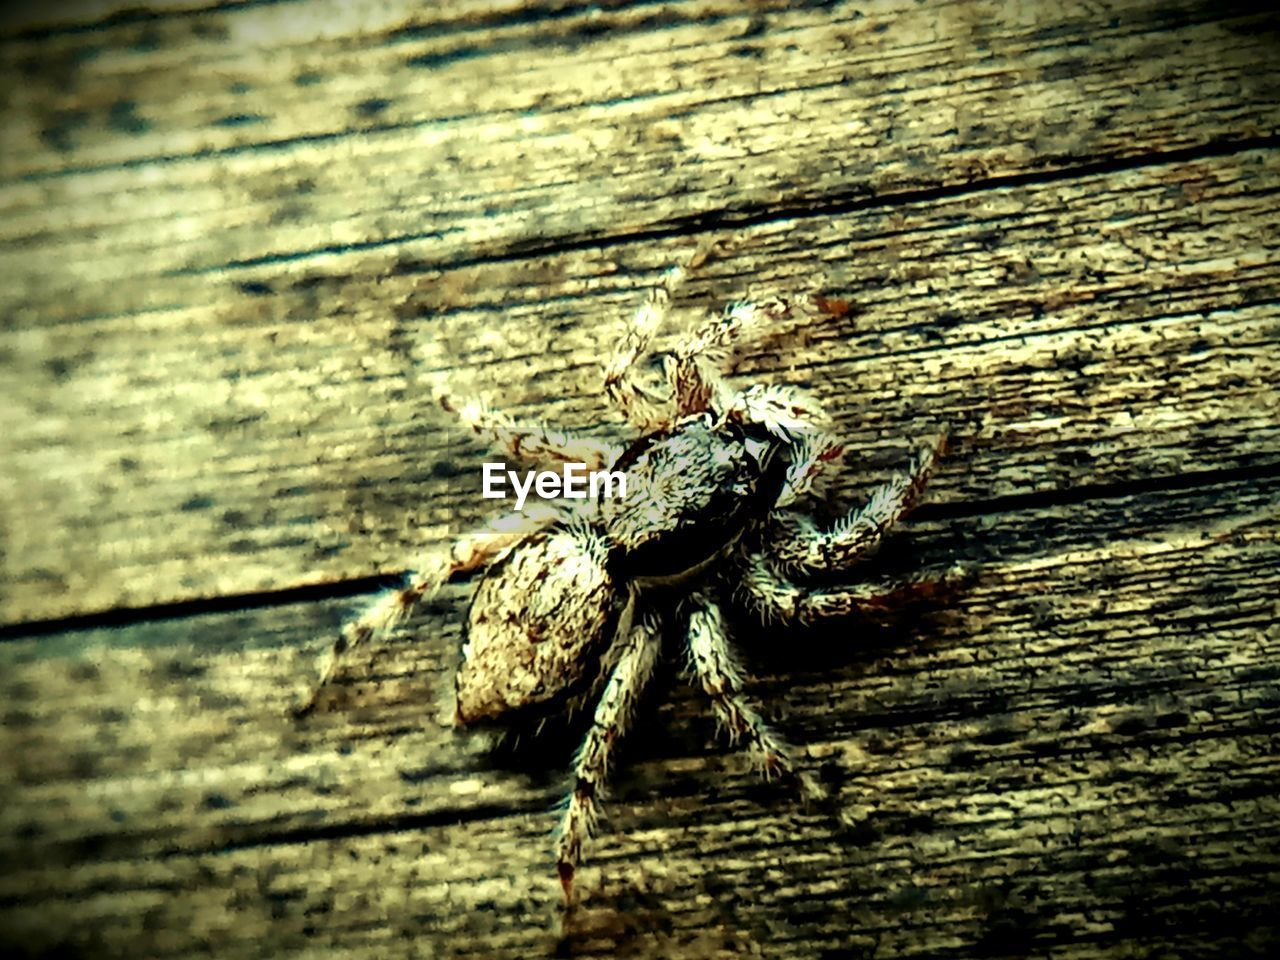 wood - material, animals in the wild, animal wildlife, animal, animal themes, invertebrate, one animal, insect, close-up, no people, arachnid, arthropod, textured, day, spider, zoology, plank, selective focus, outdoors, nature